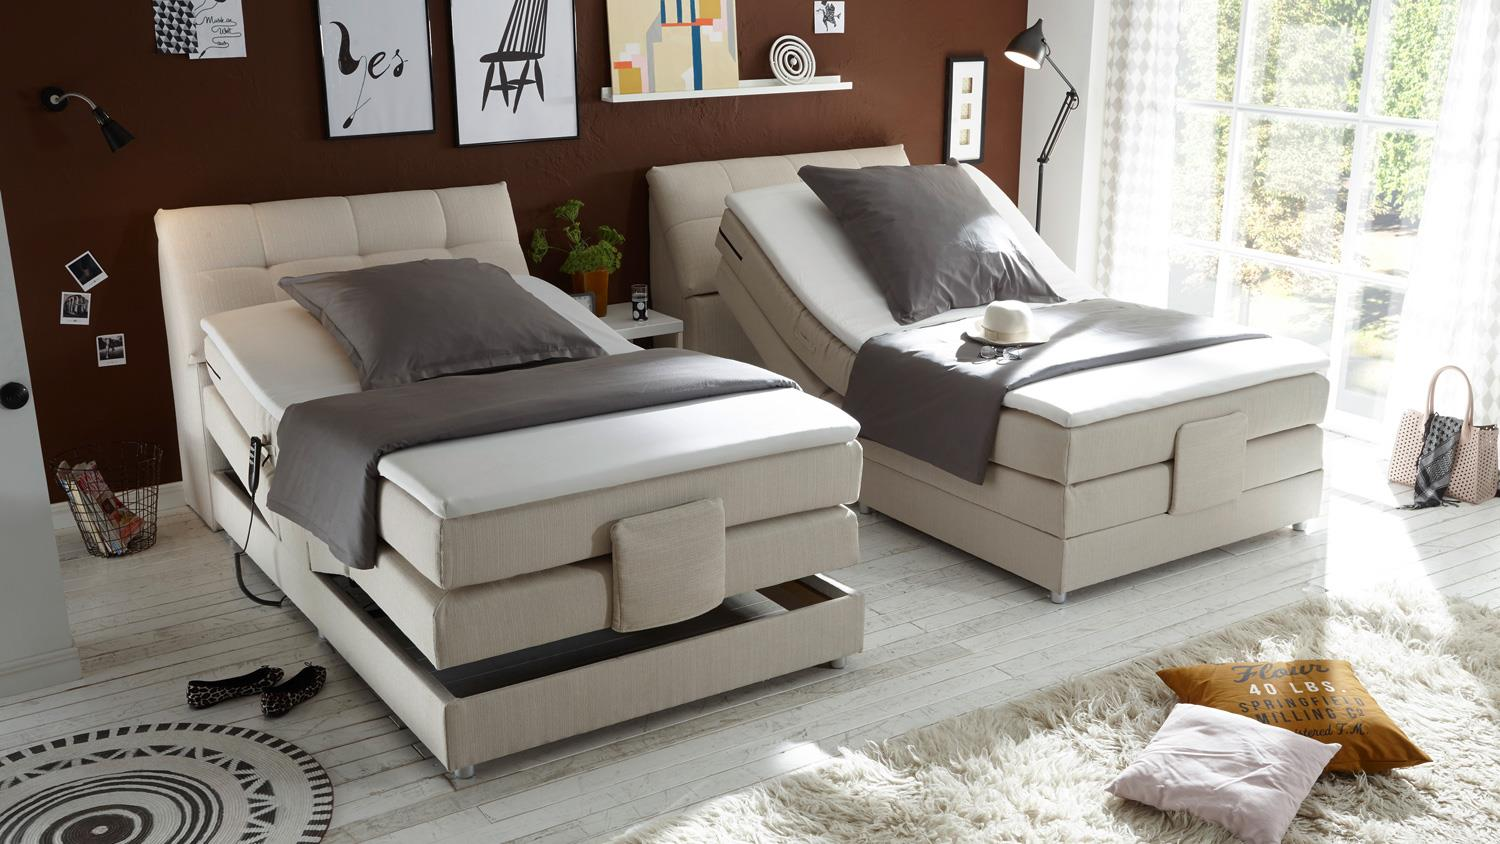 boxspringbett concort stoff creme komfortbett mit motor. Black Bedroom Furniture Sets. Home Design Ideas